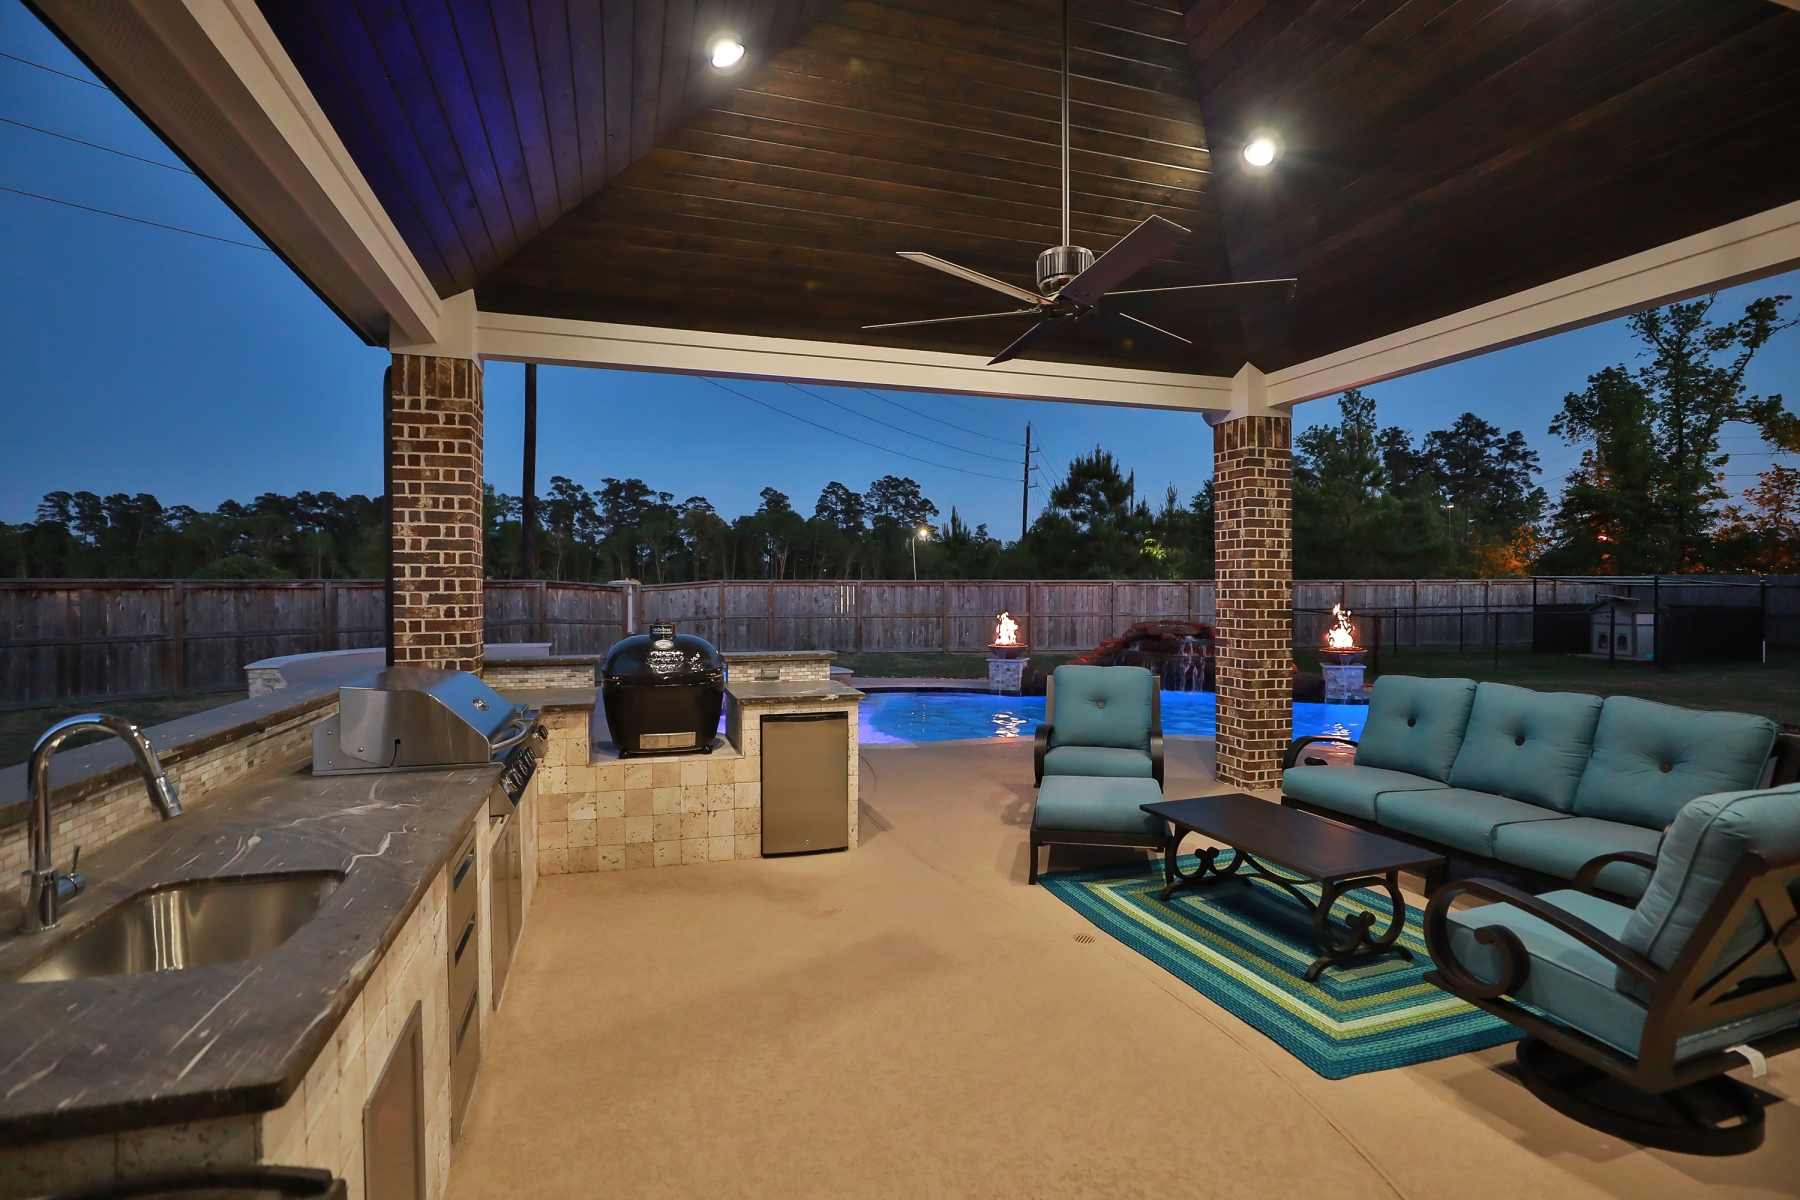 Covered Patio with Outdoor Kitchen & Living Area Overlooking Pool